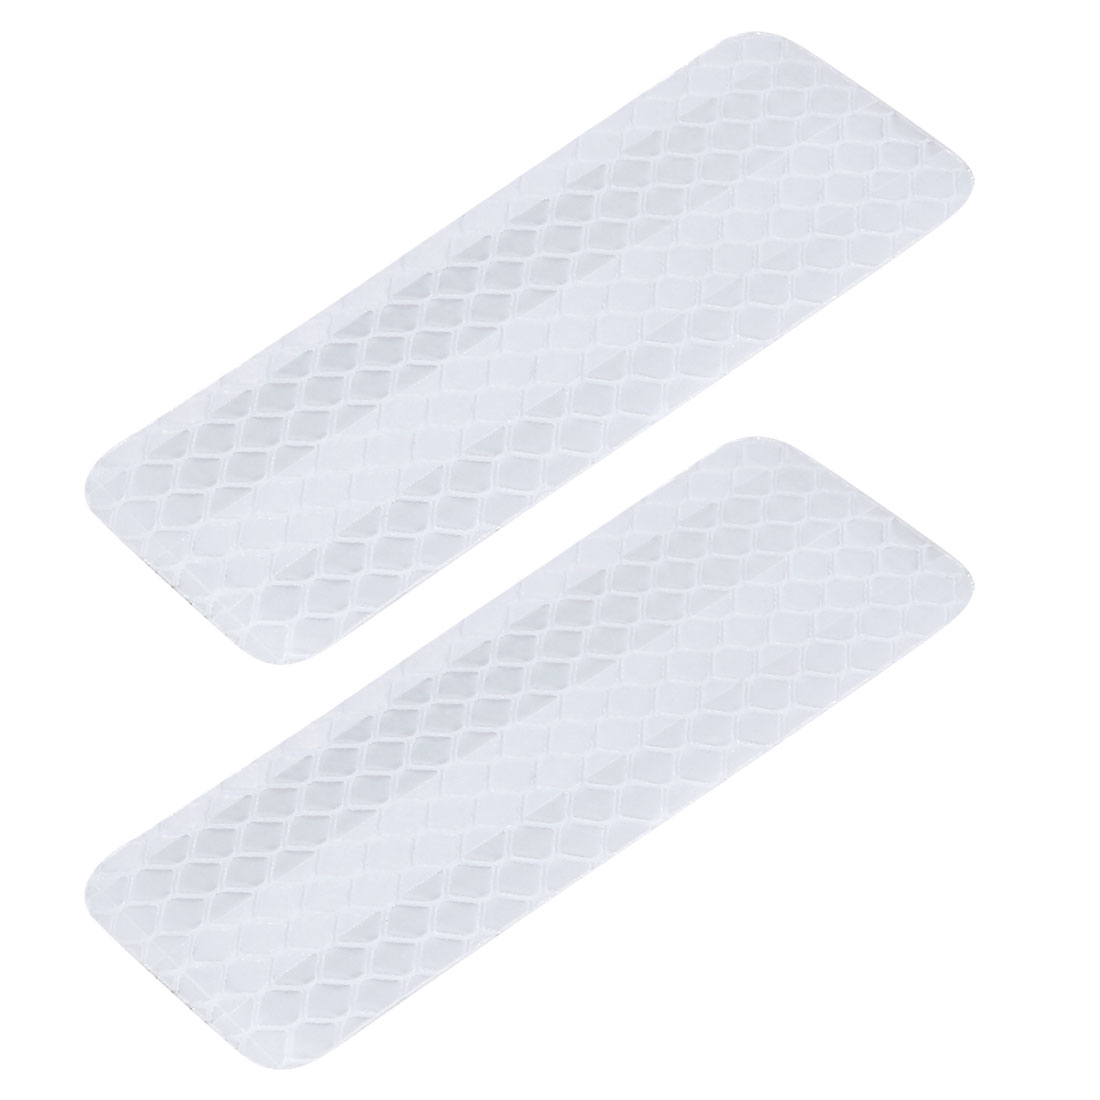 2pcs Reflective Warning Tape Strip Sticker White 30mm x 80mm for Car